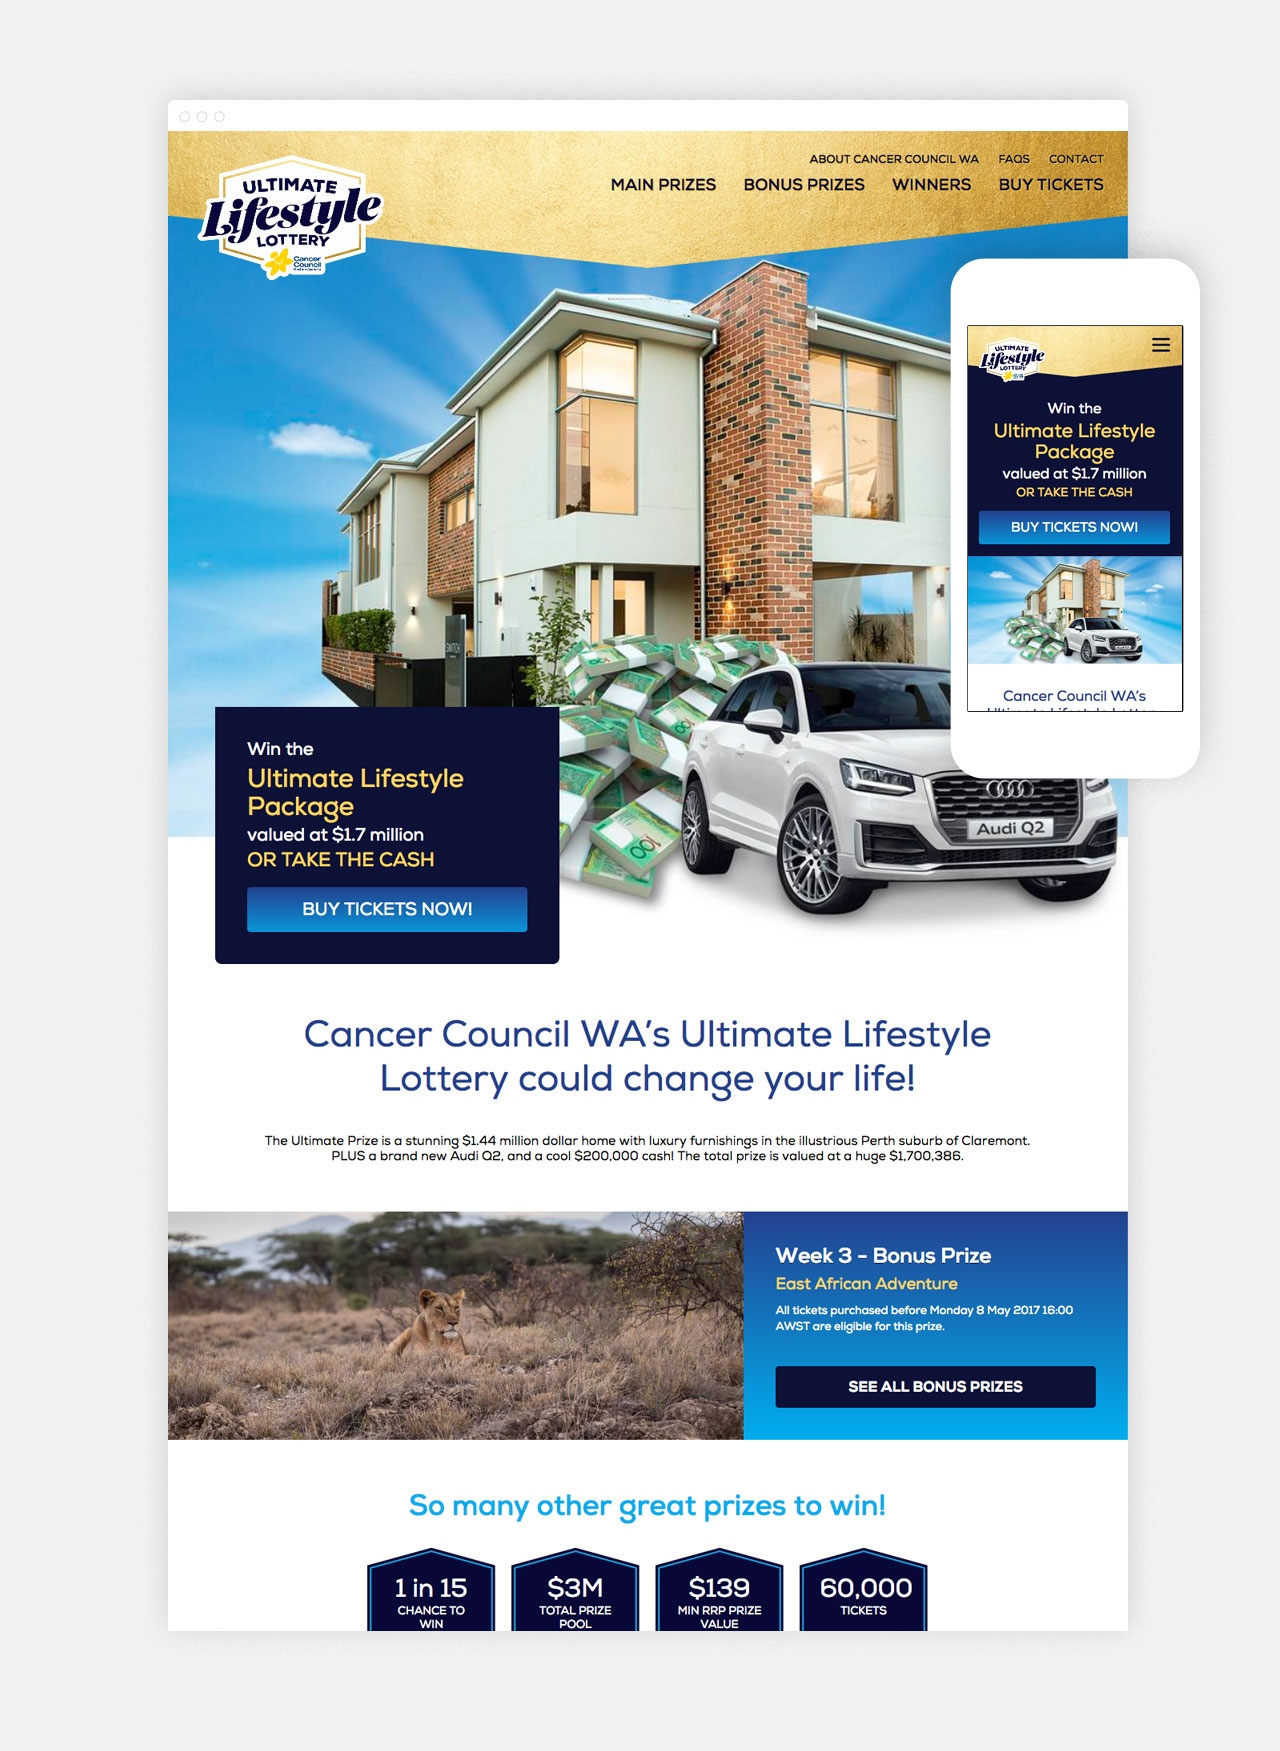 The Ultimate Lifestyle Lottery responsive homepage